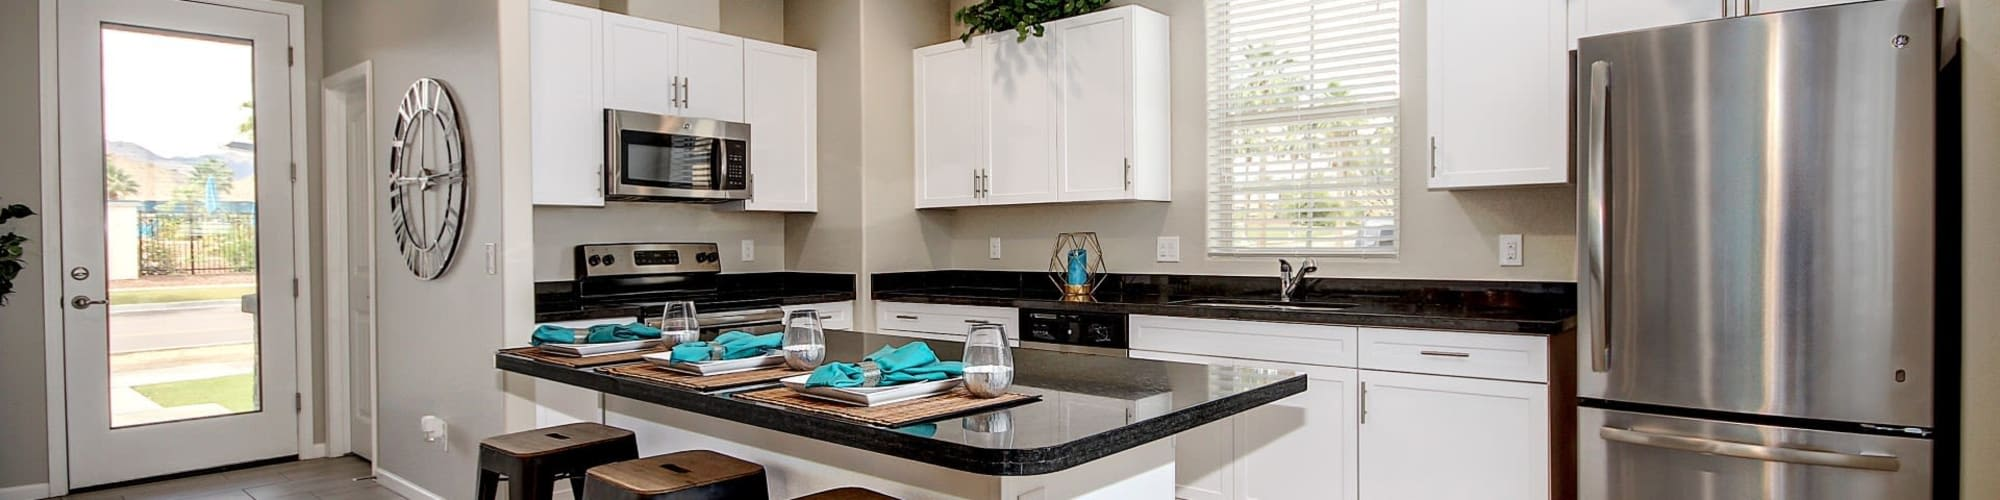 Contact us at BB Living at Eastmark in Mesa, Arizona